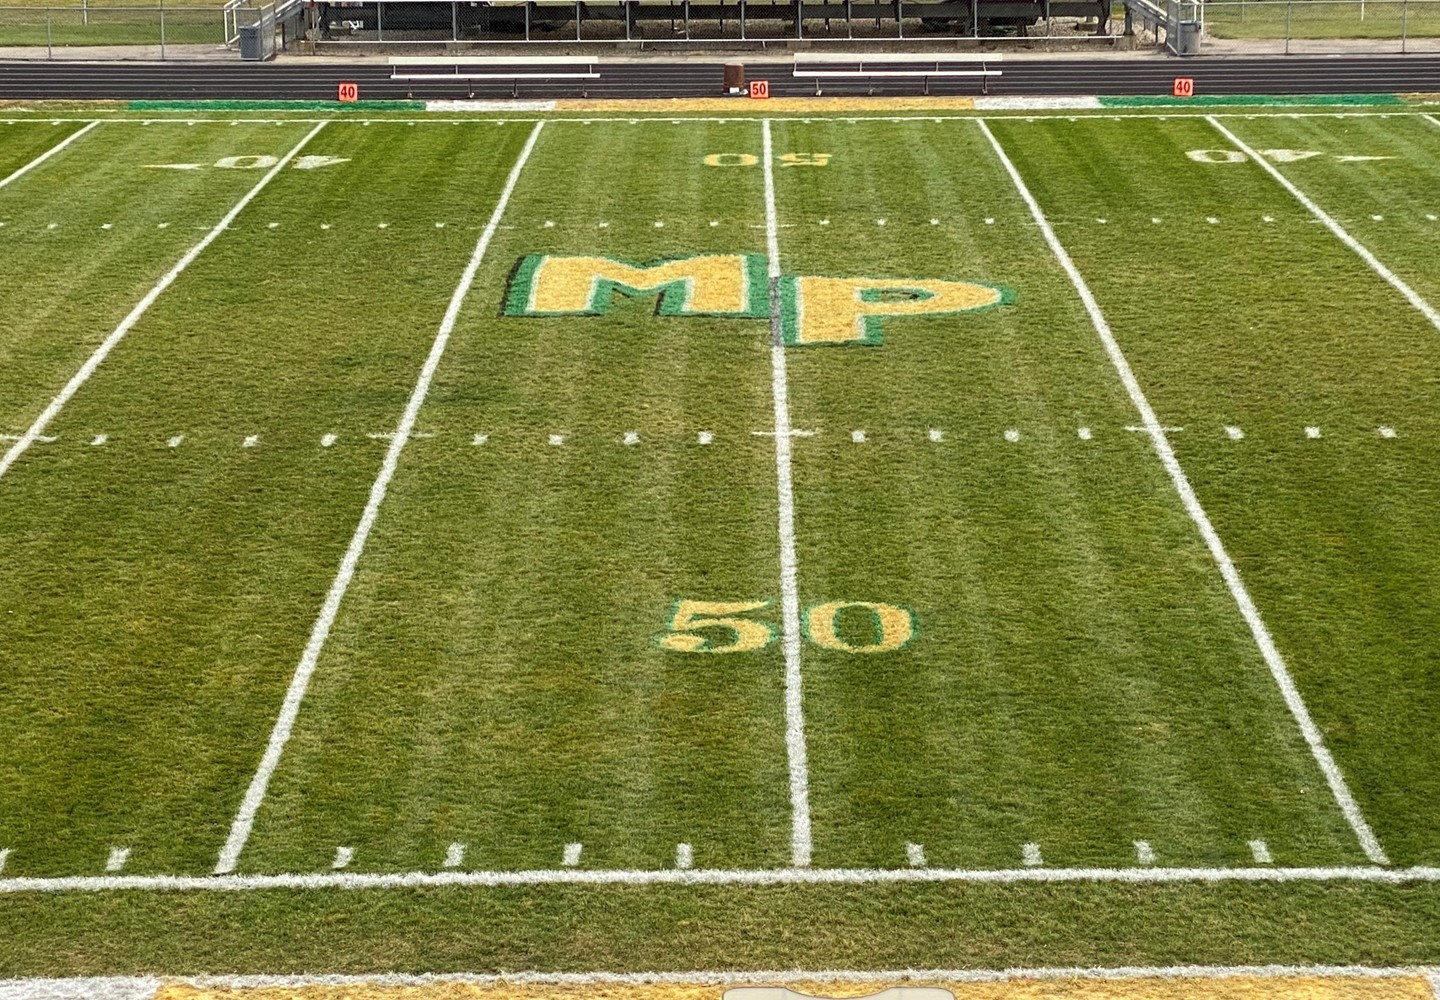 MP football field at the 50 yard line